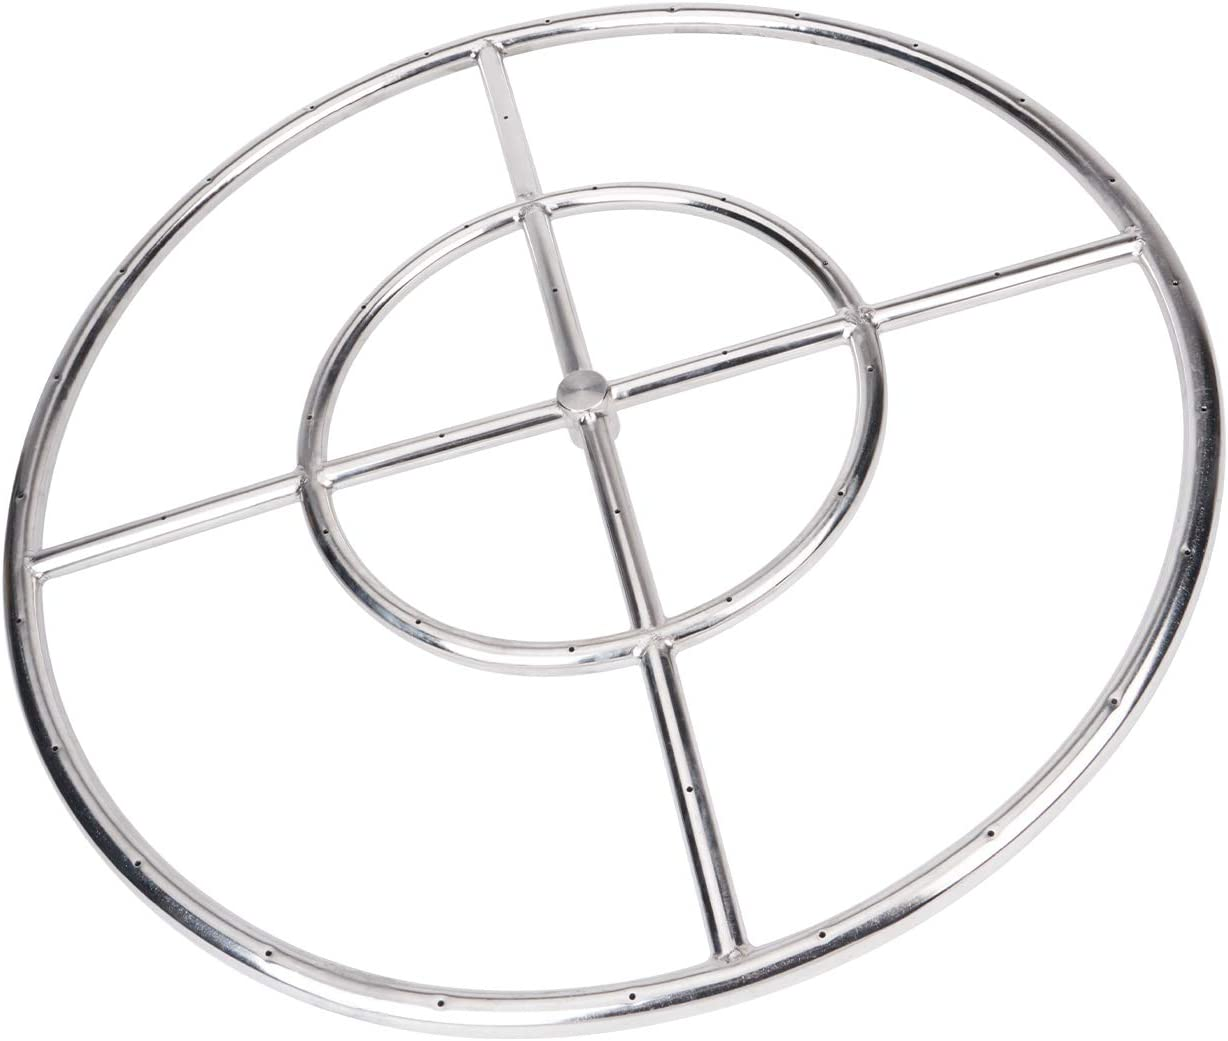 GASPRO 24 Inch Round Fire Pit Burner Ring for Natural Gas or Propane, 304 Series Stainless Steel with Thread Seal Tape, BTU 296,000 Max